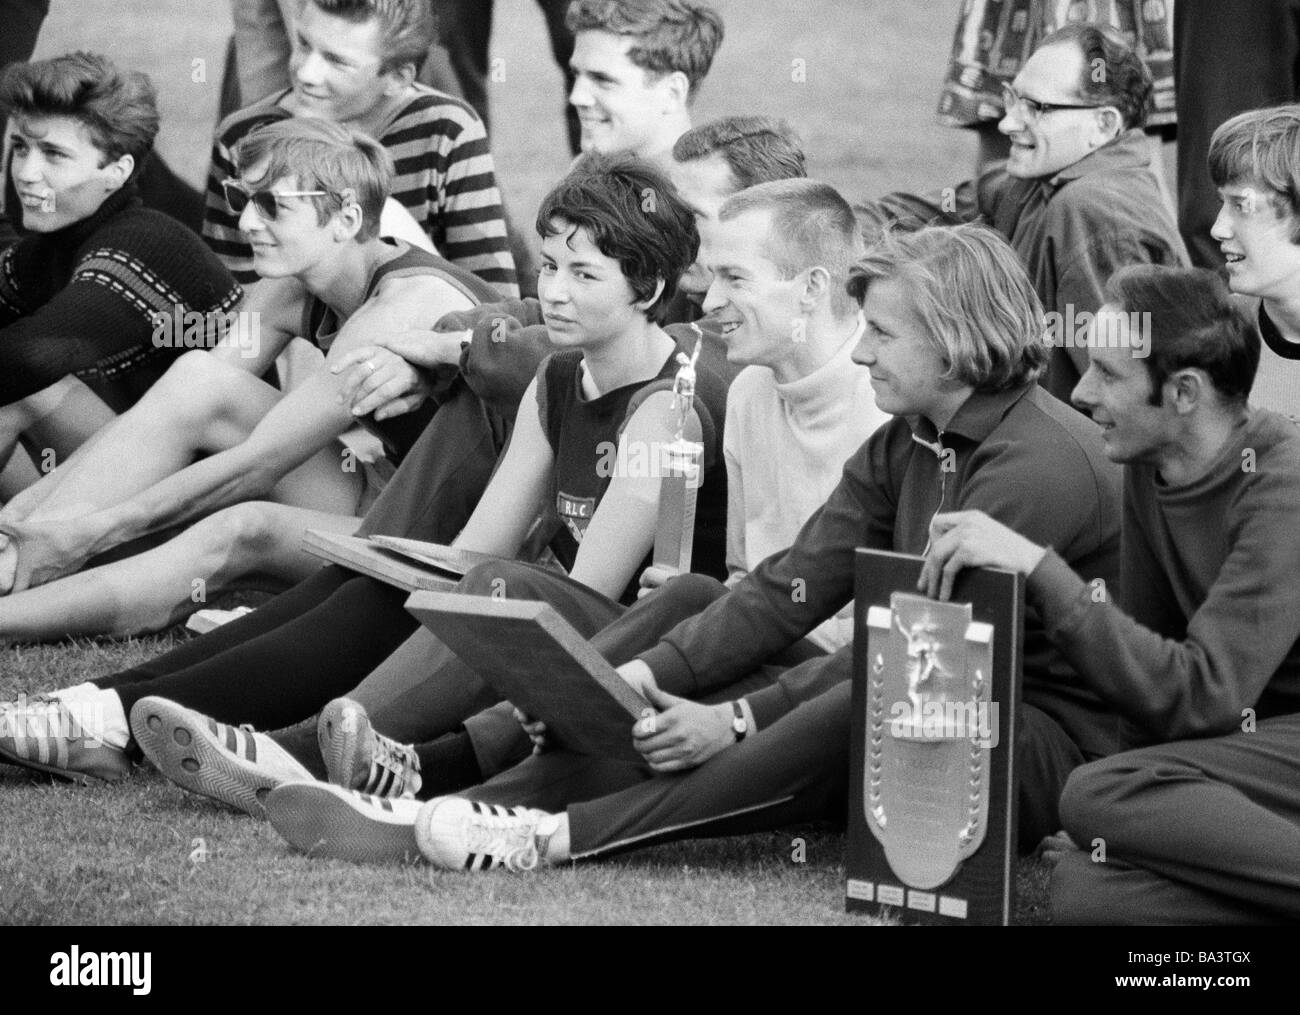 Sixties, black and white photo, sports, athletics, Competition in Athletics 1966 of the Vest Recklinghausen in the - Stock Image